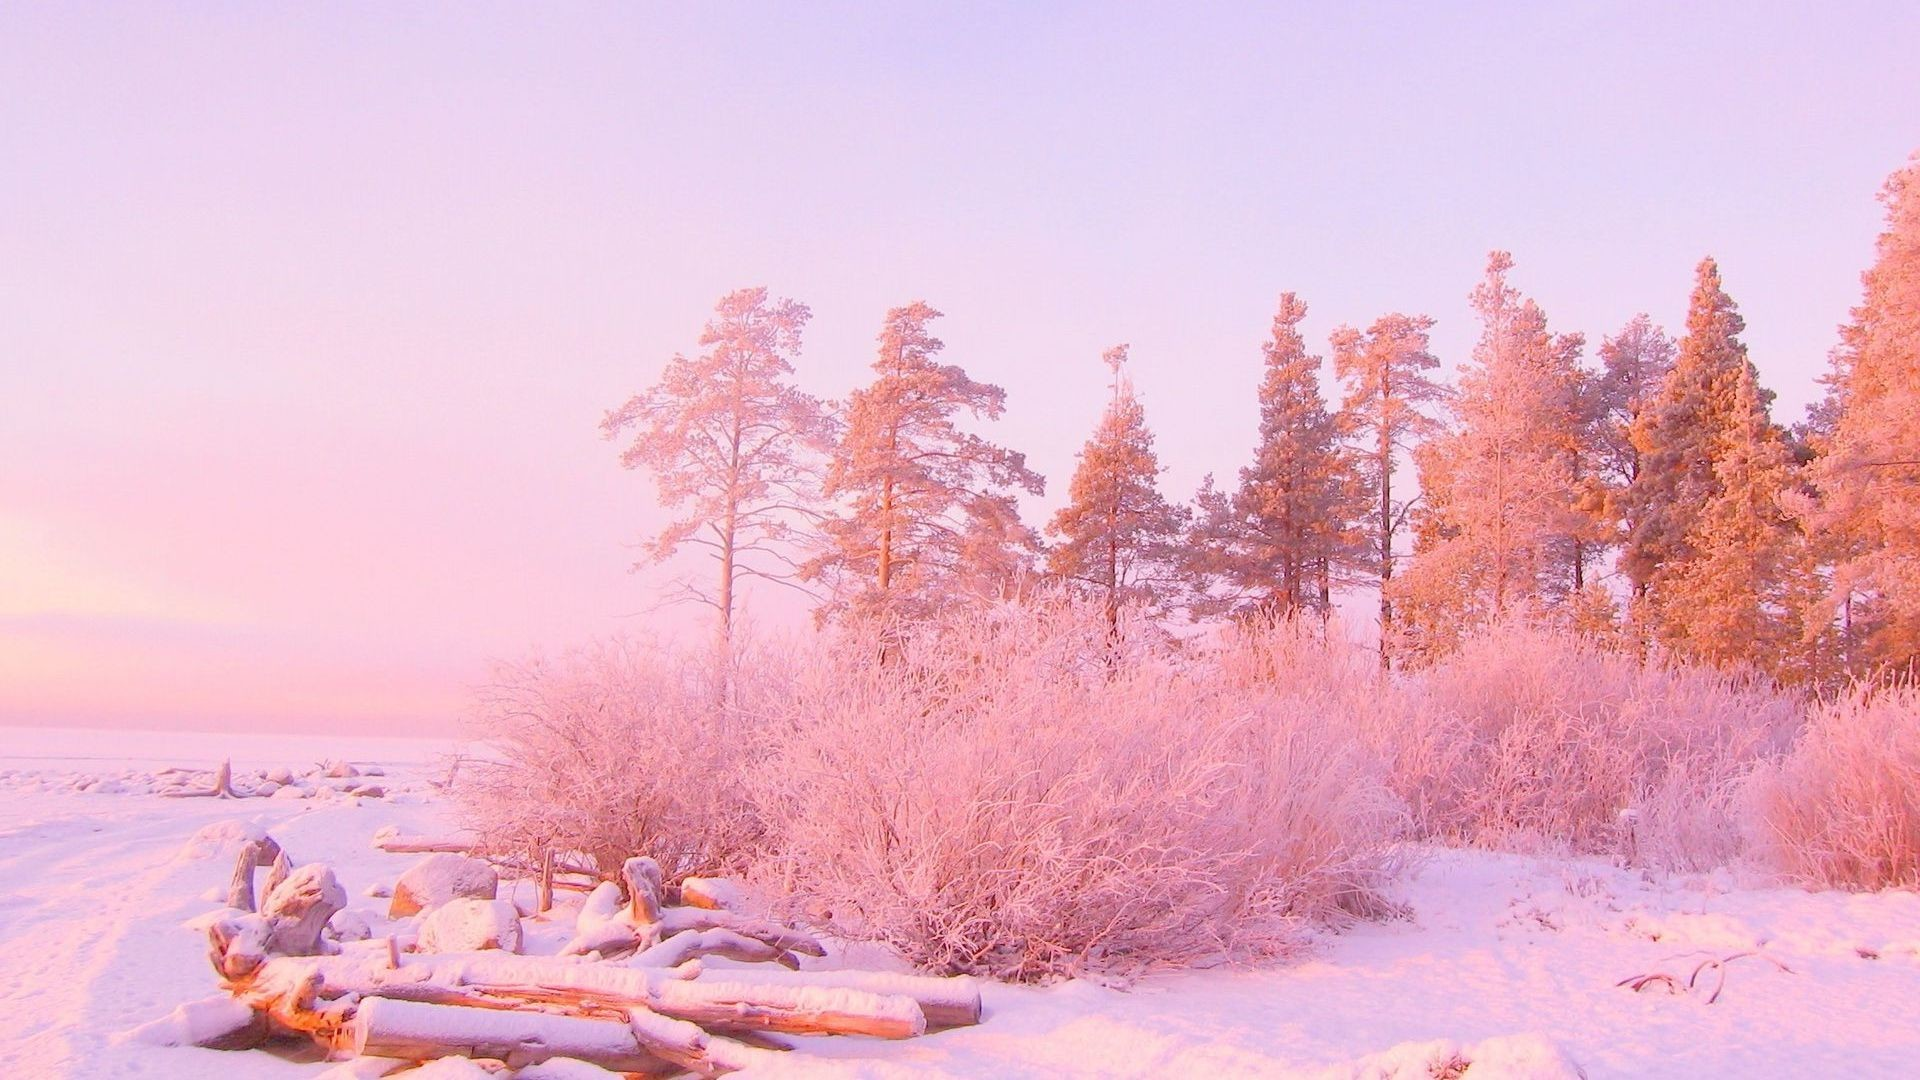 Res: 1920x1080, Light Pink Backgrounds Wallpaper